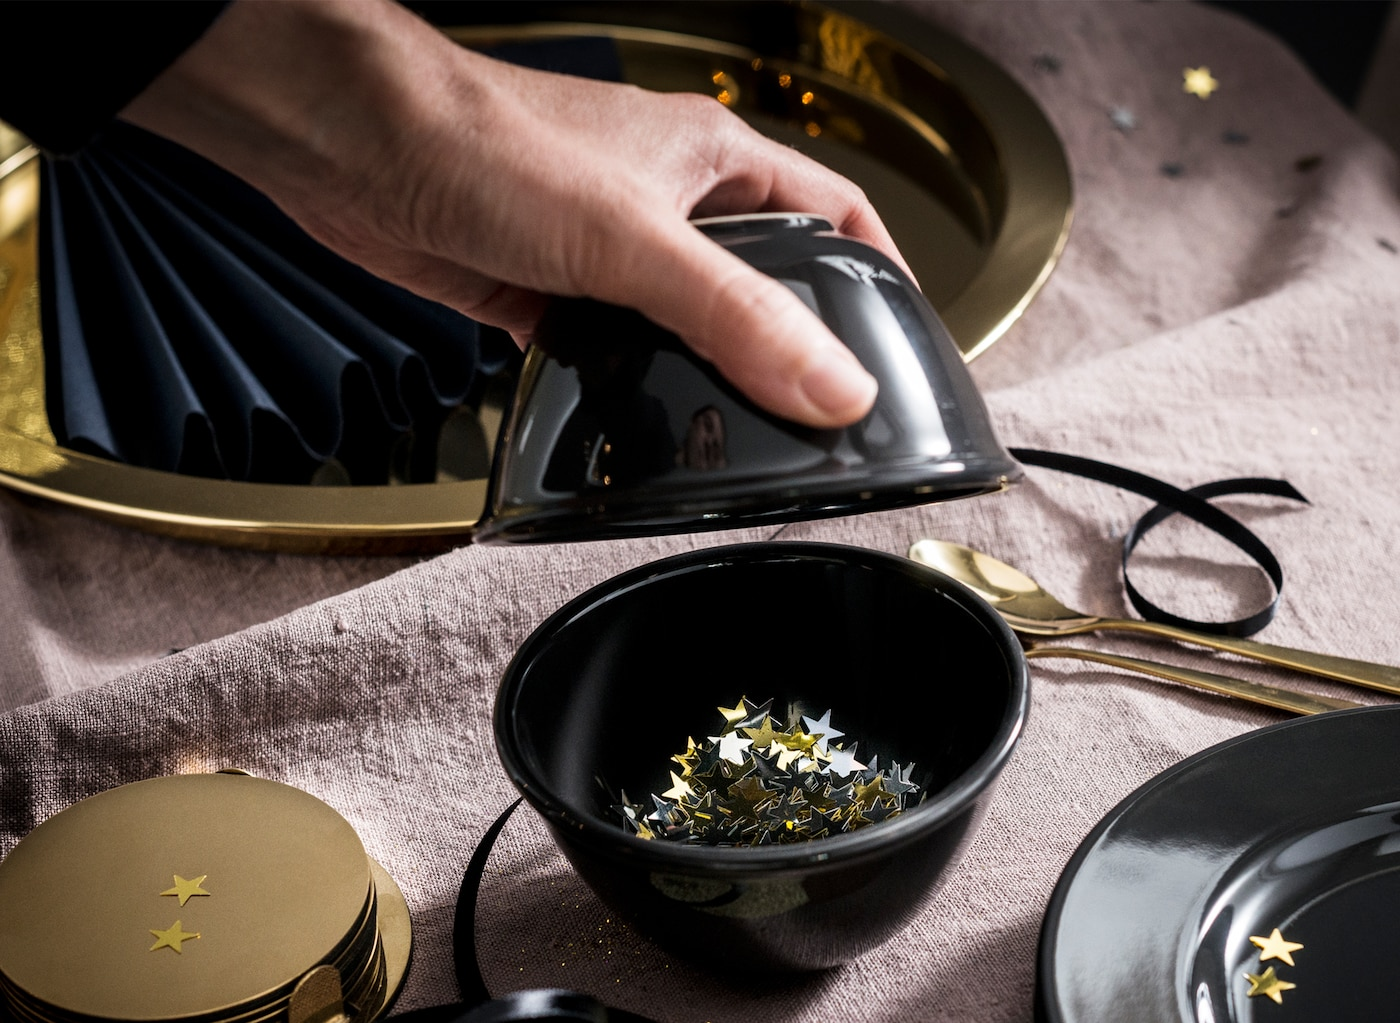 IKEA last minute gifts include a heartwarming chocolate spoon recipe, handpainted bottle decor and luxurious golden dinnerware.